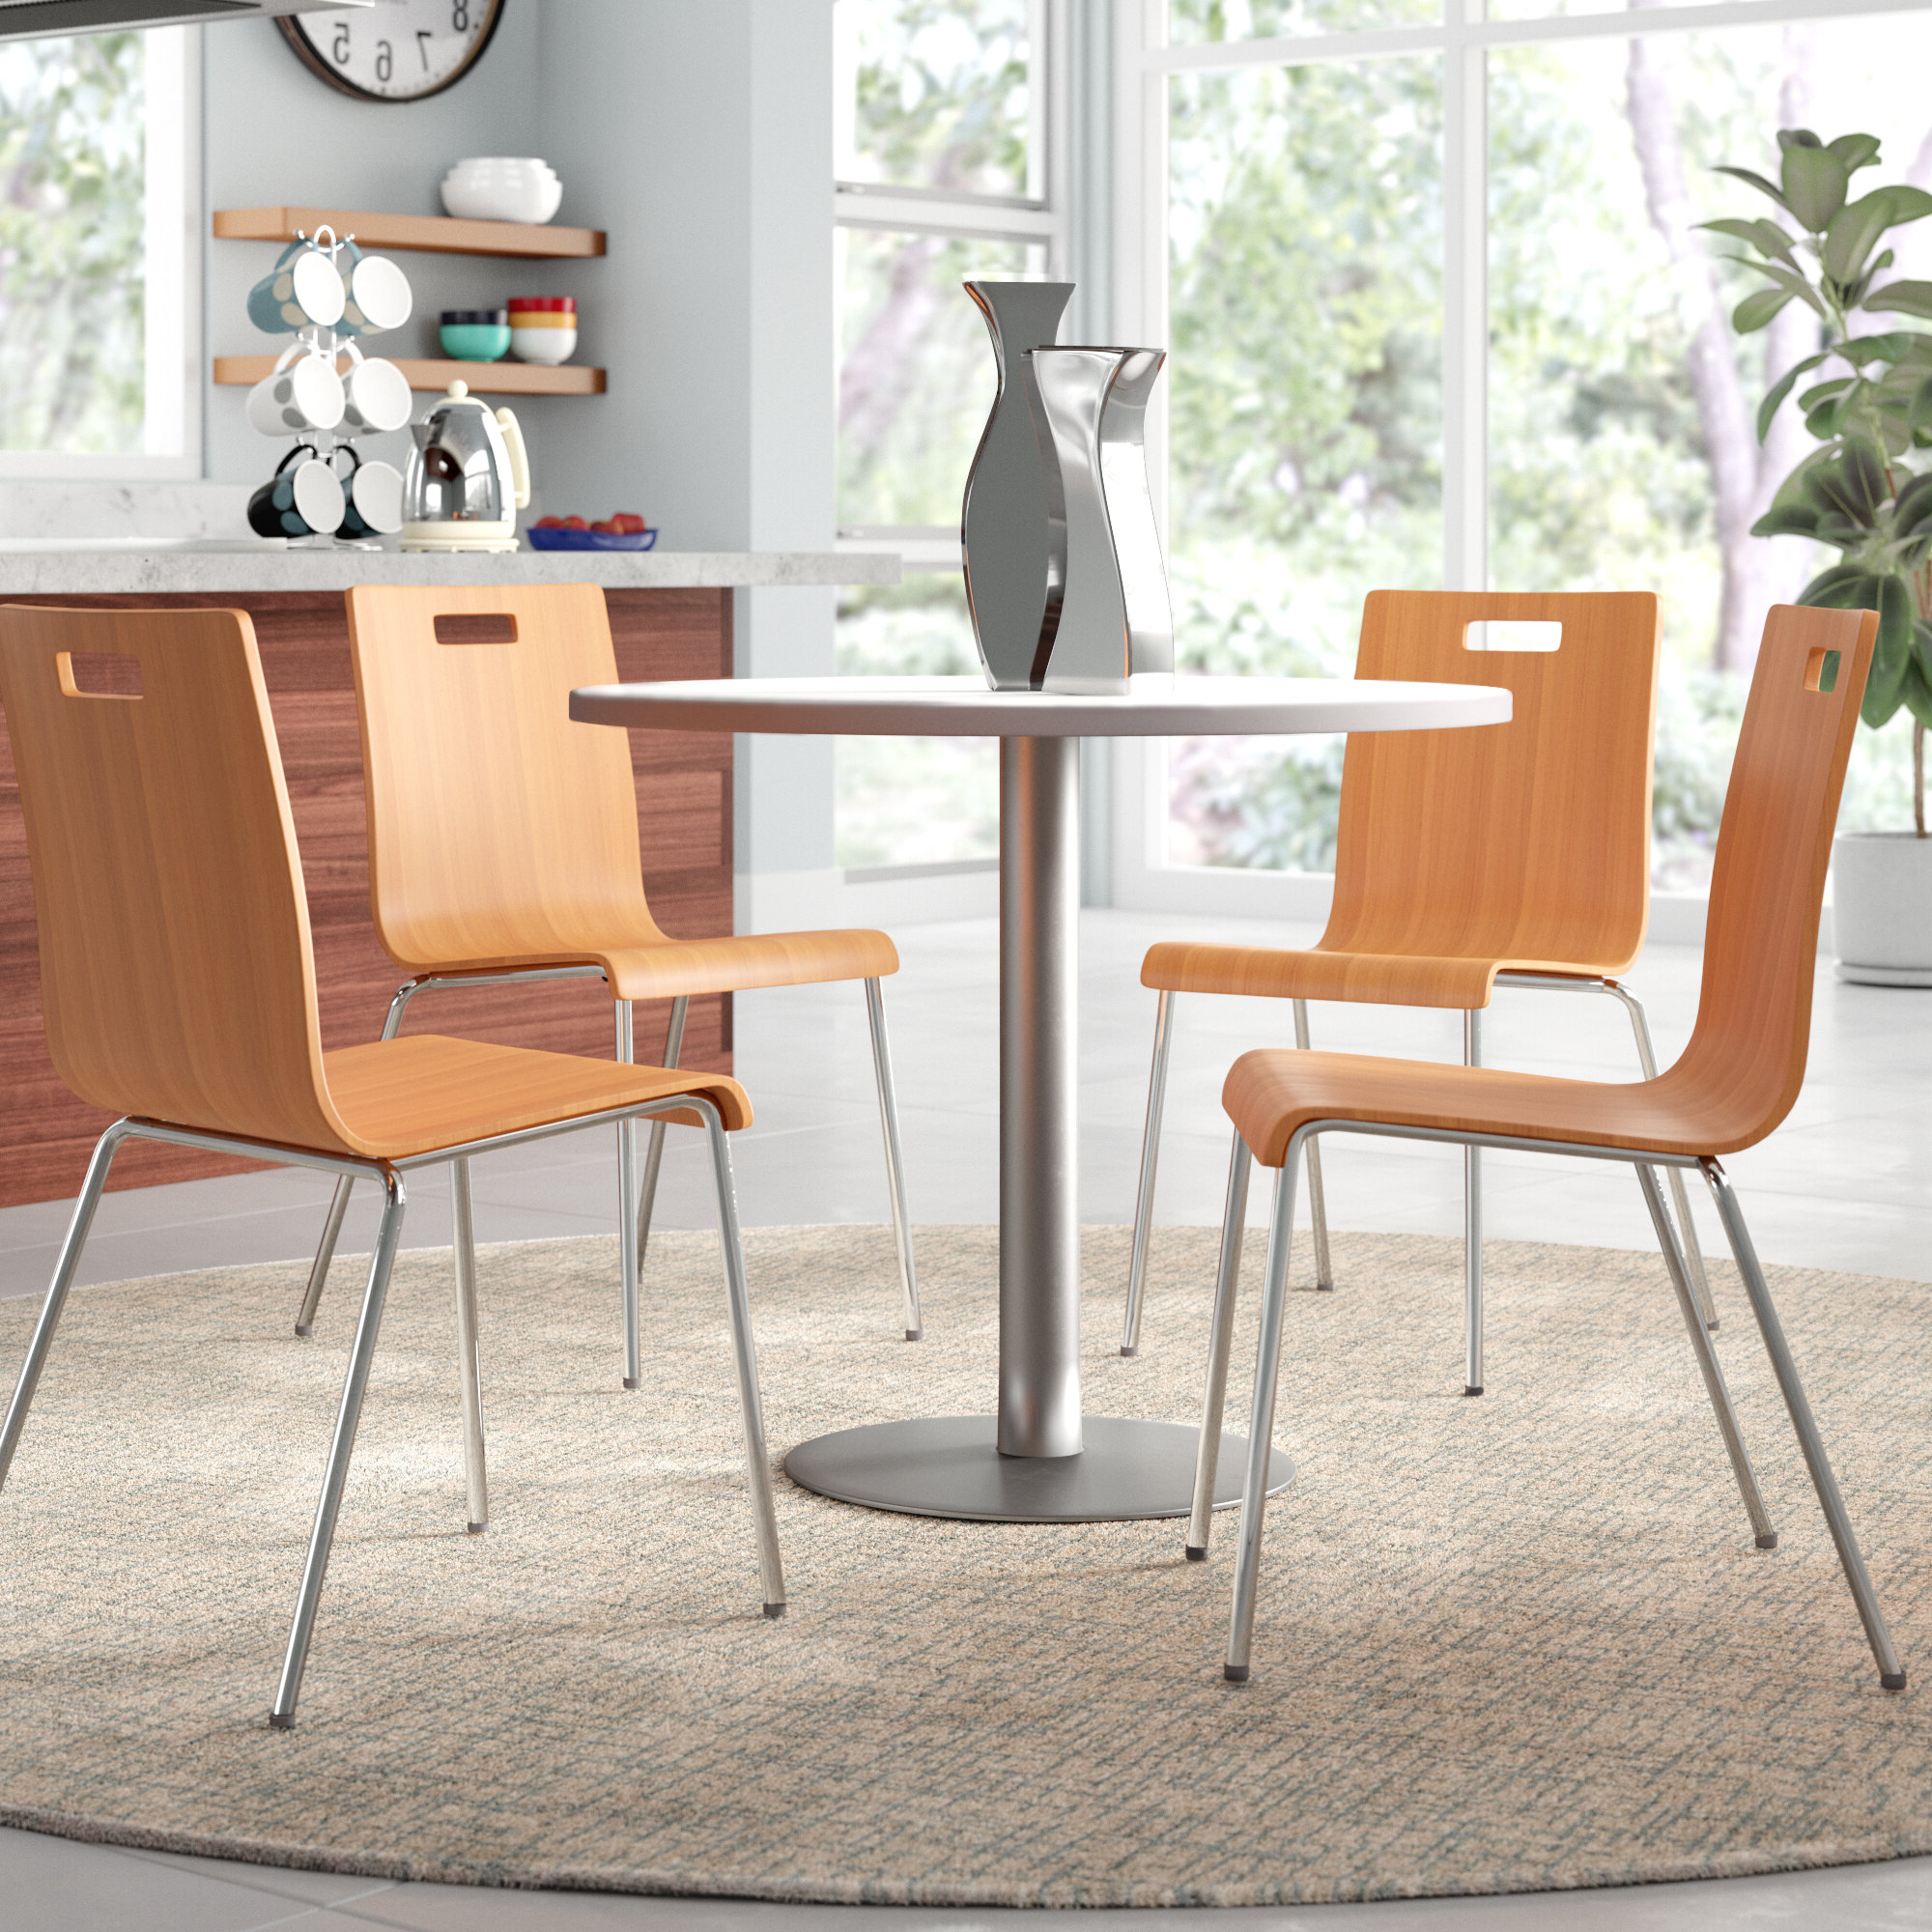 Kfi Seating 5 Piece Dining Set & Reviews